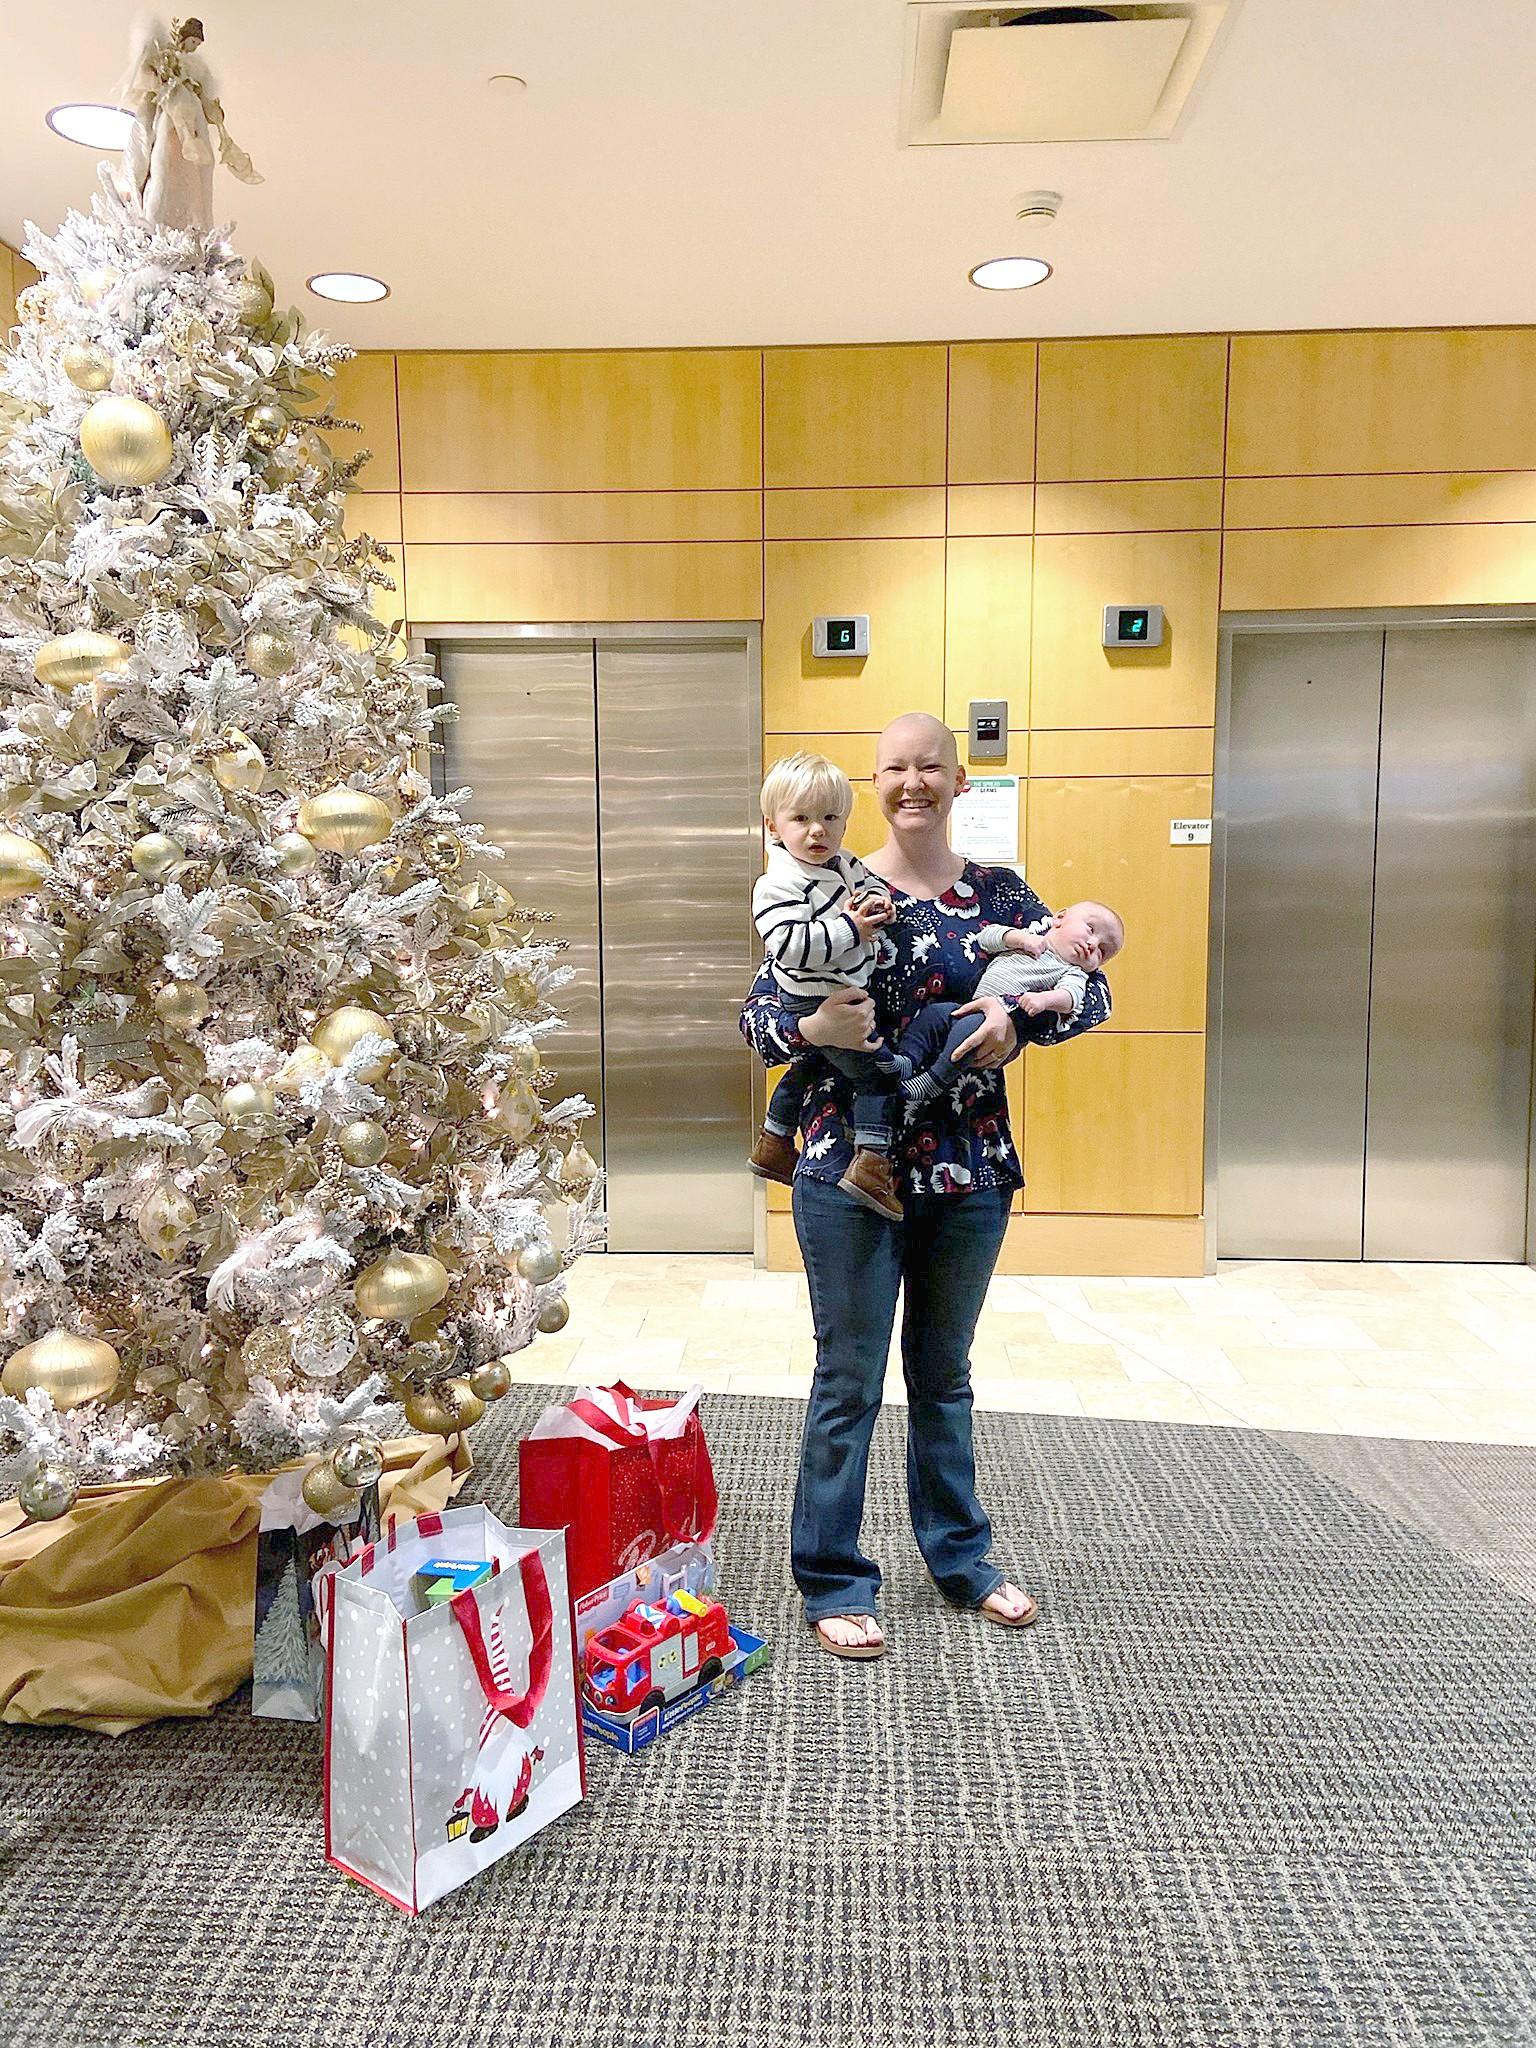 Heather Haynes and her sons, Grayson (left) and Ashton (right), were invited to Bay Park Hospital's Tree Lighting on Dec. 4 where Haynes lit the tree. (Photo submitted by ProMedica Bay Park Hospital.)